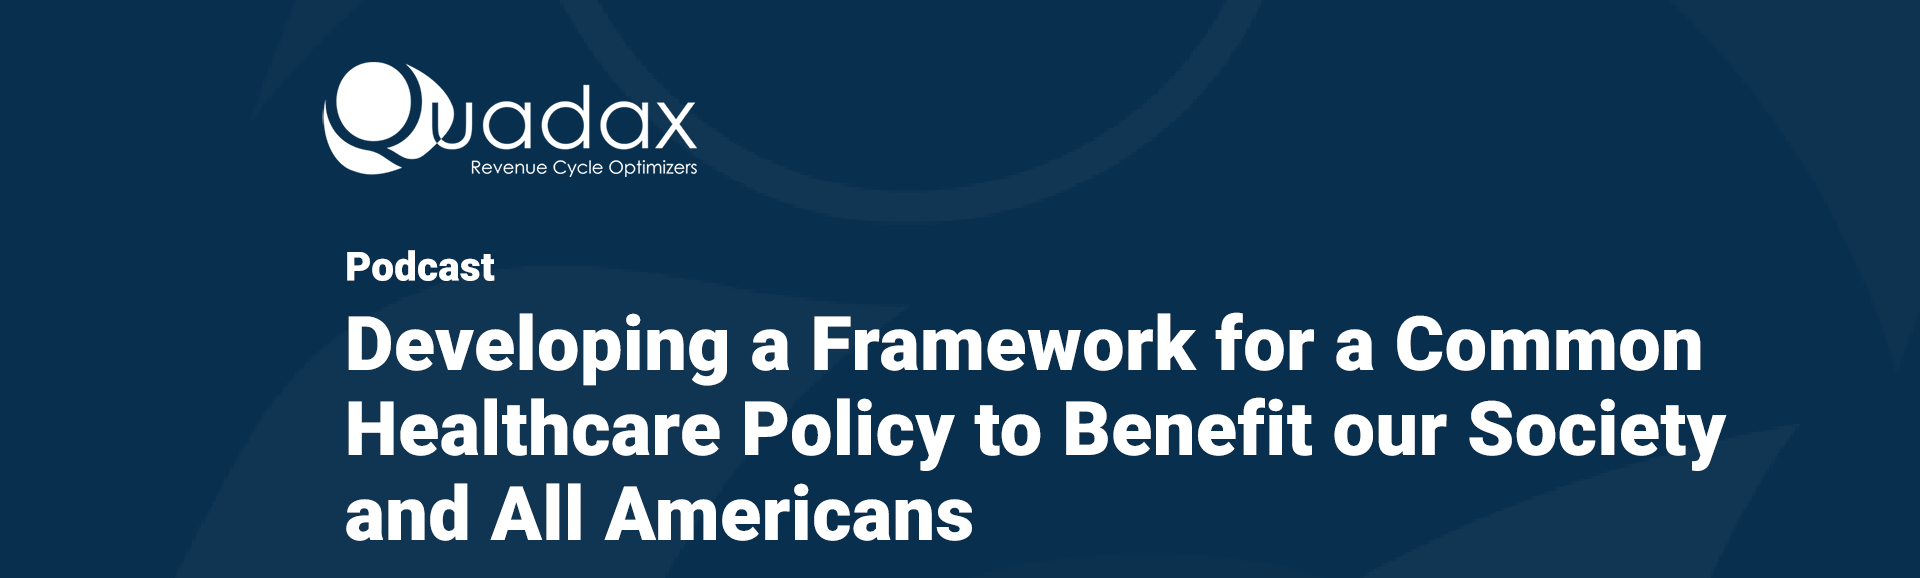 On-Demand-Podcast-Landing-Page-Healthcare-Policy